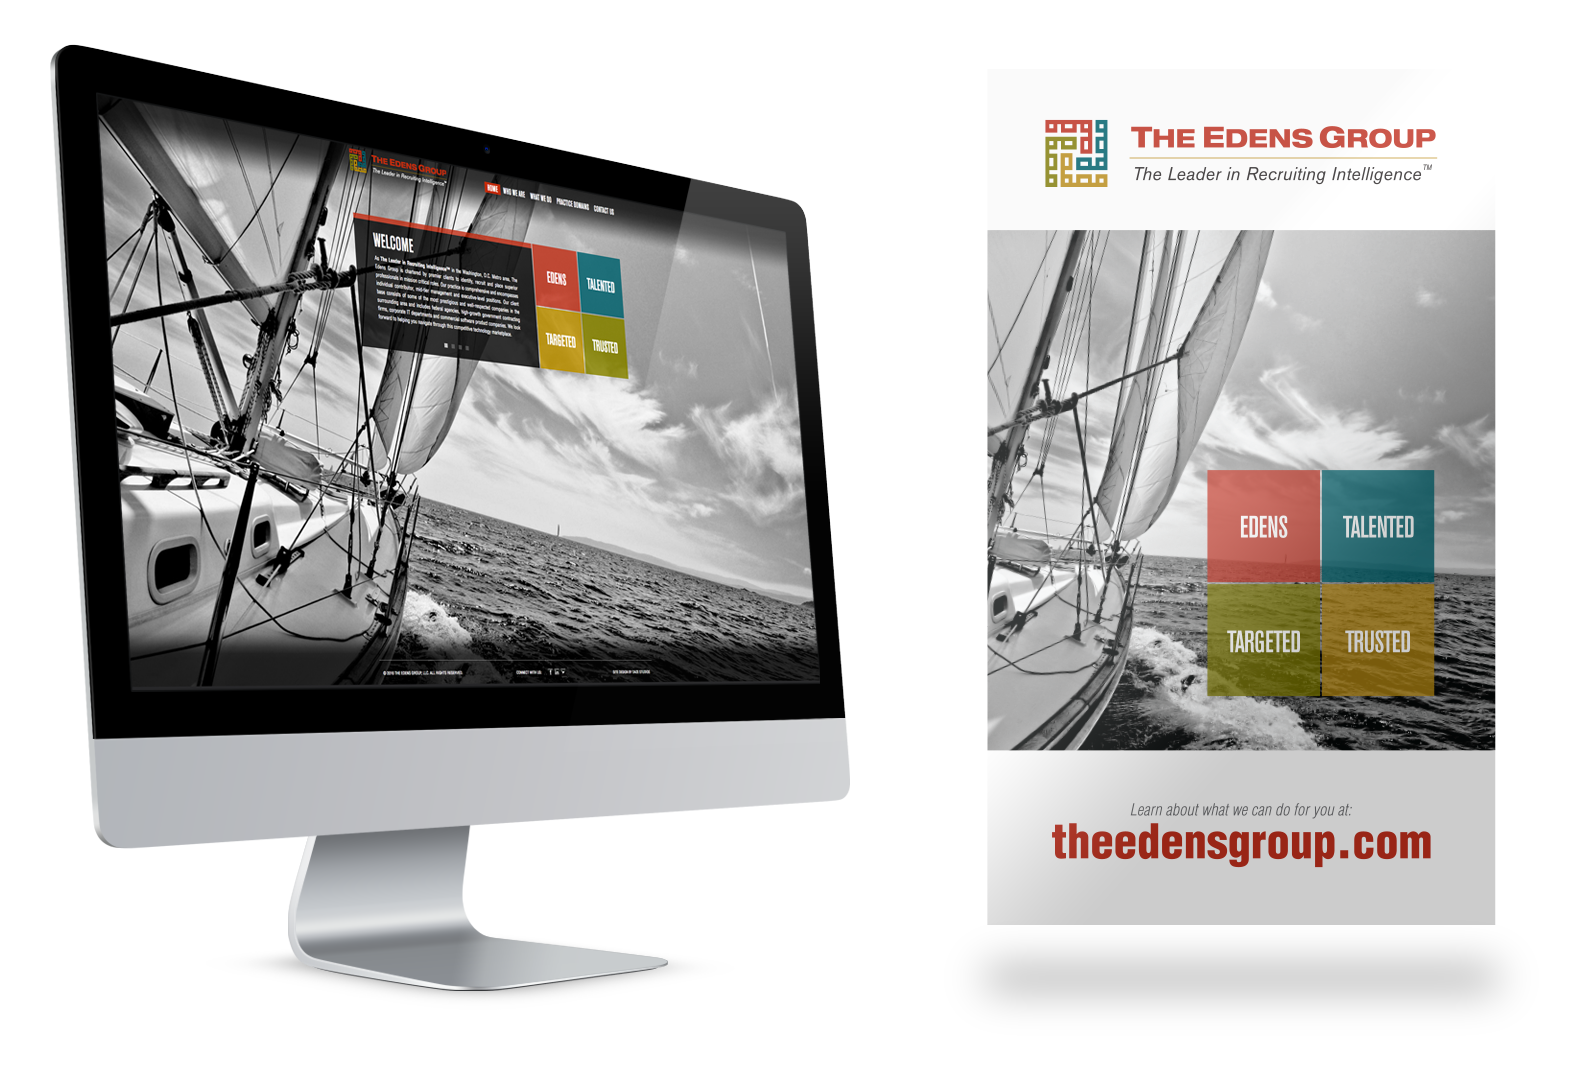 Portfolio Gallery - The Edens Group website and banner